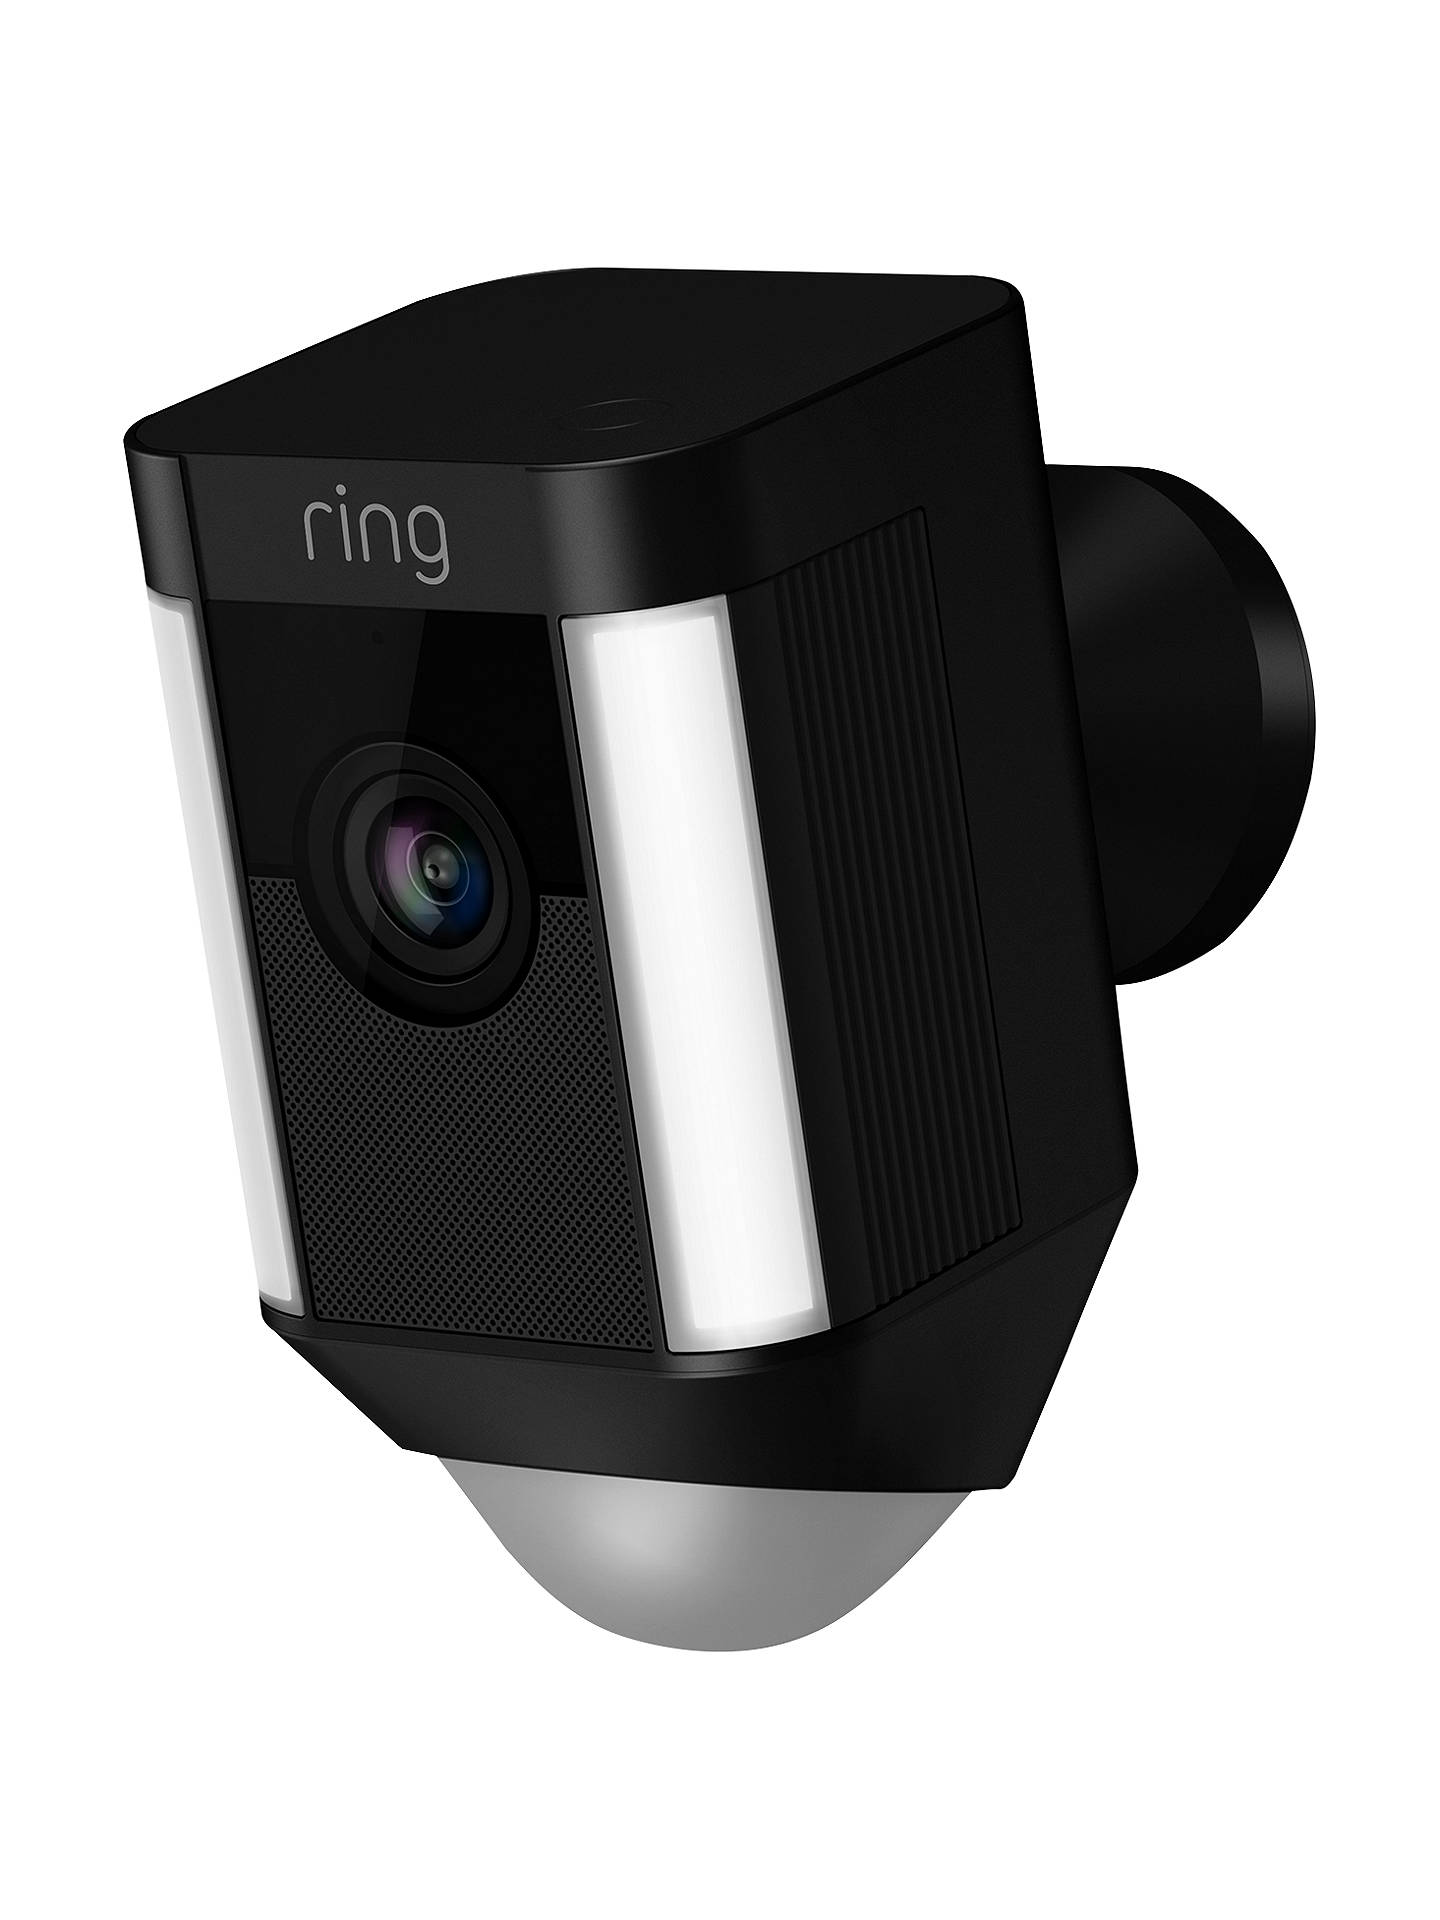 Ring Spotlight Cam Smart Security Camera With Built In Wi Fi Siren Contacts Wiring Series Buyring Alarm